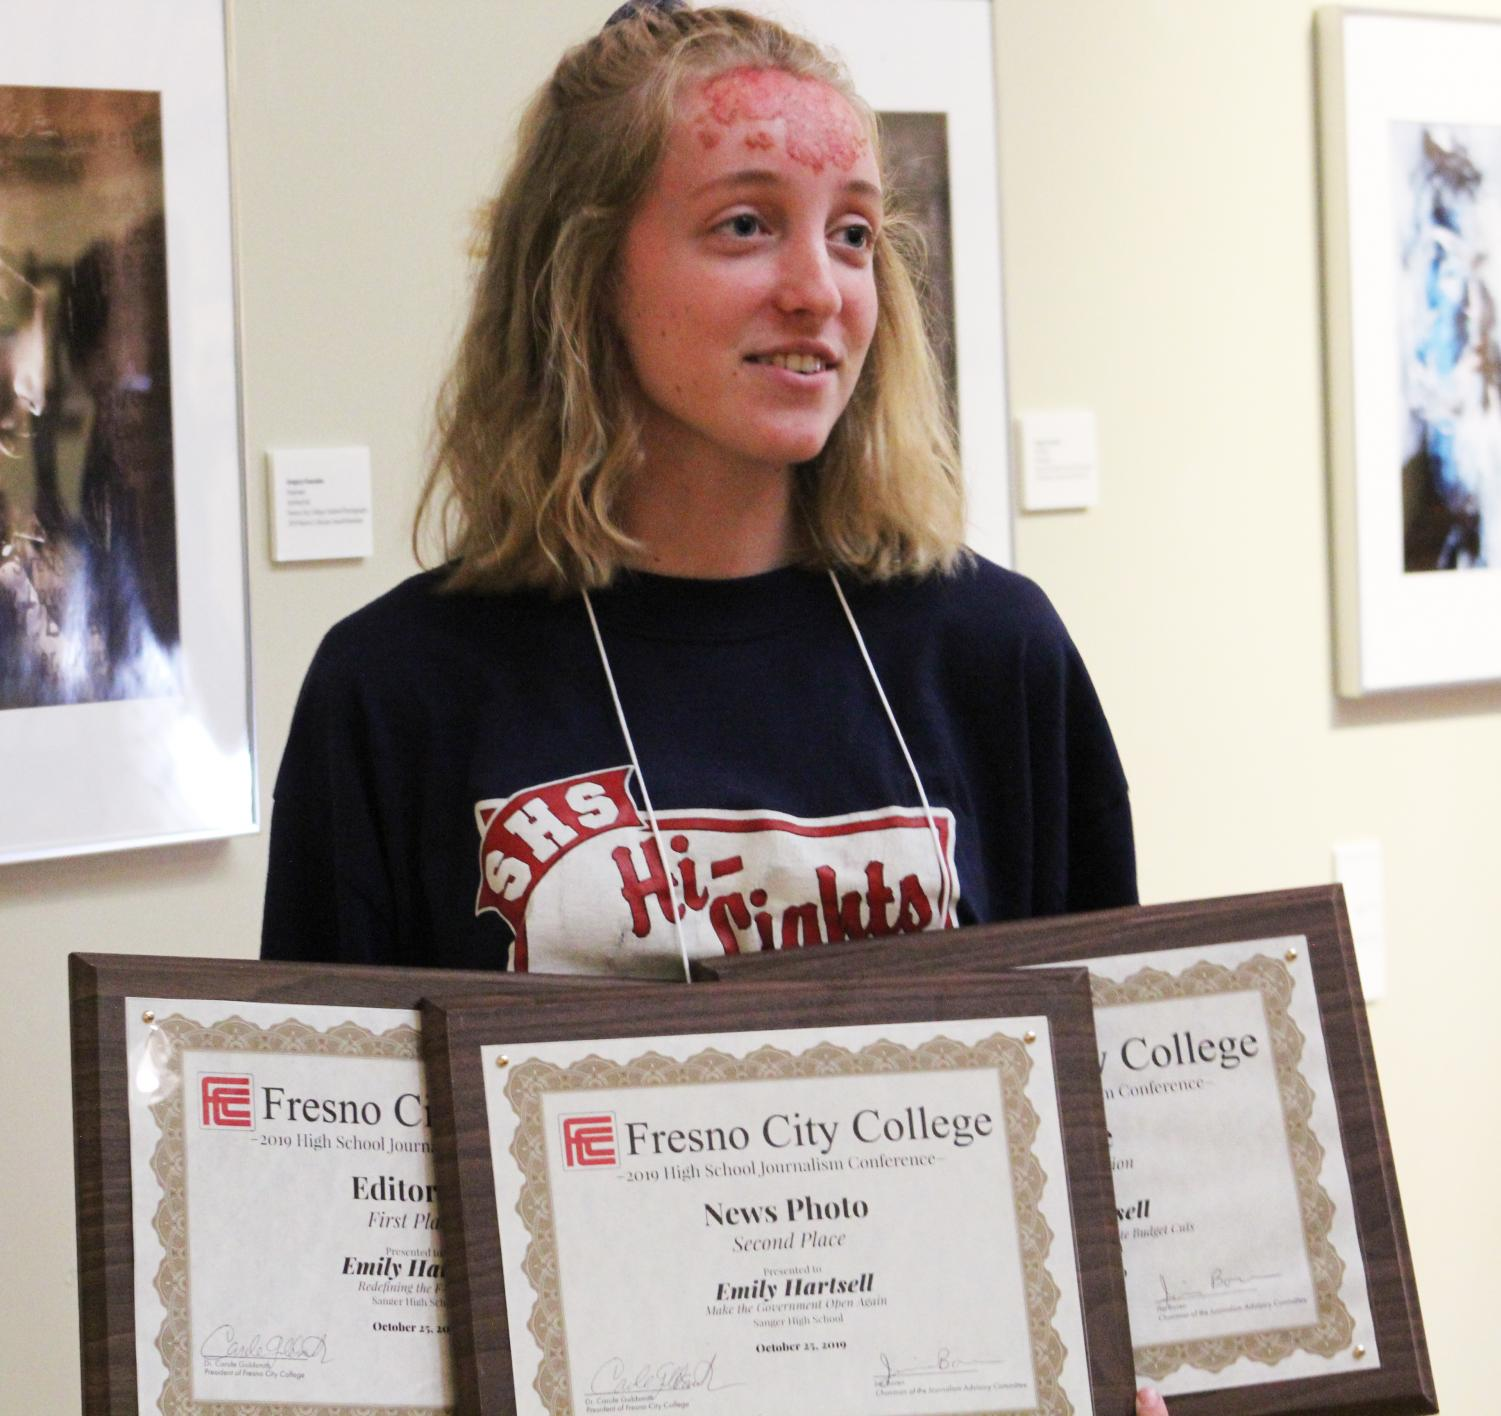 Emily Hartsell takes home three writing awards from the 2019 High School Journalism Day conference. Emily won first place for editorial writing, second place for news story, and an honorable mention for the feature writing category. This was the first year awards were given based on submitted work from high school students.